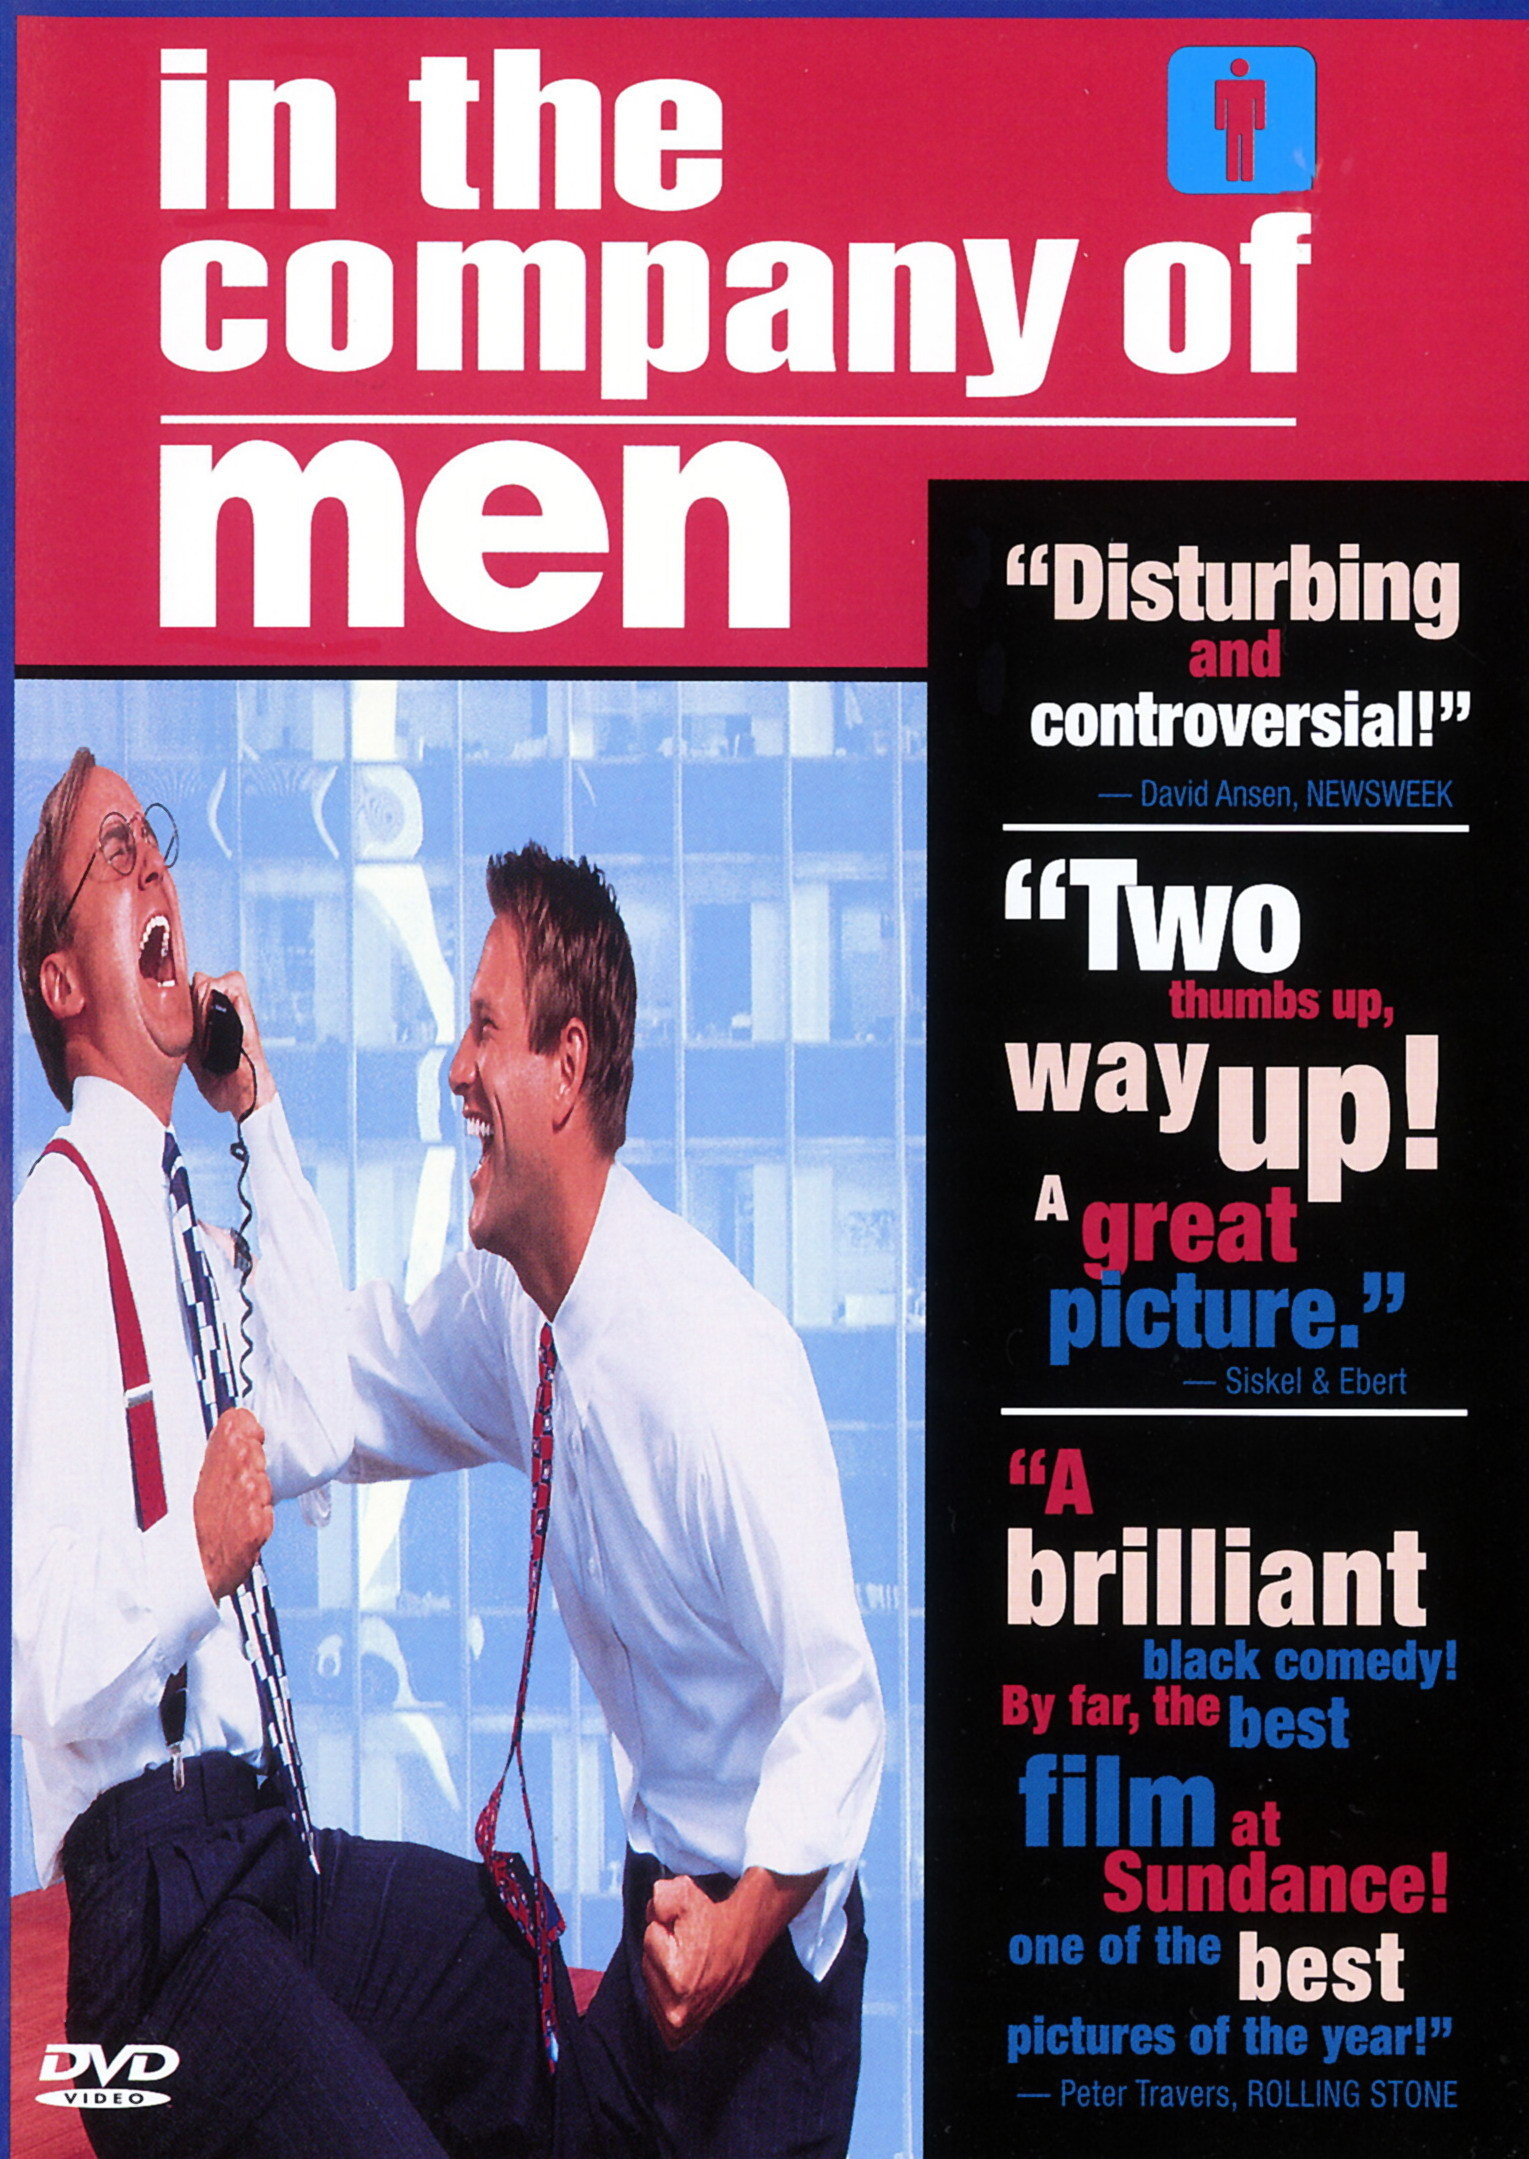 1-in-the-company-of-men